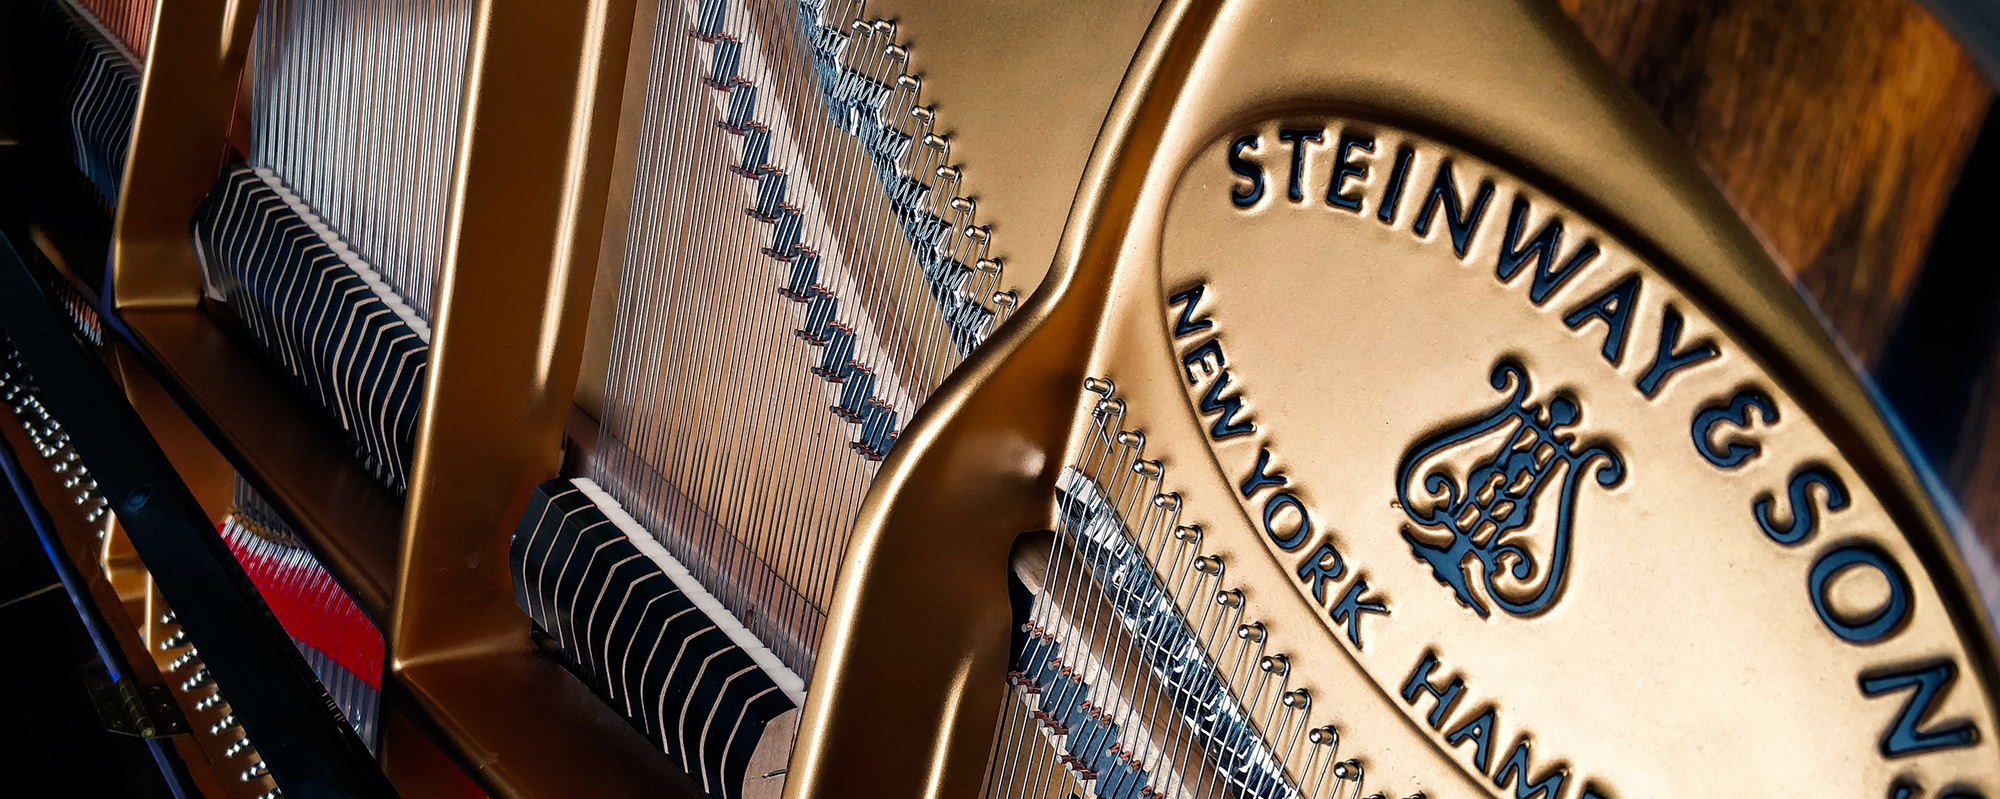 Close-up of the inside of a grand piano's strings - Steinway and Sons label.